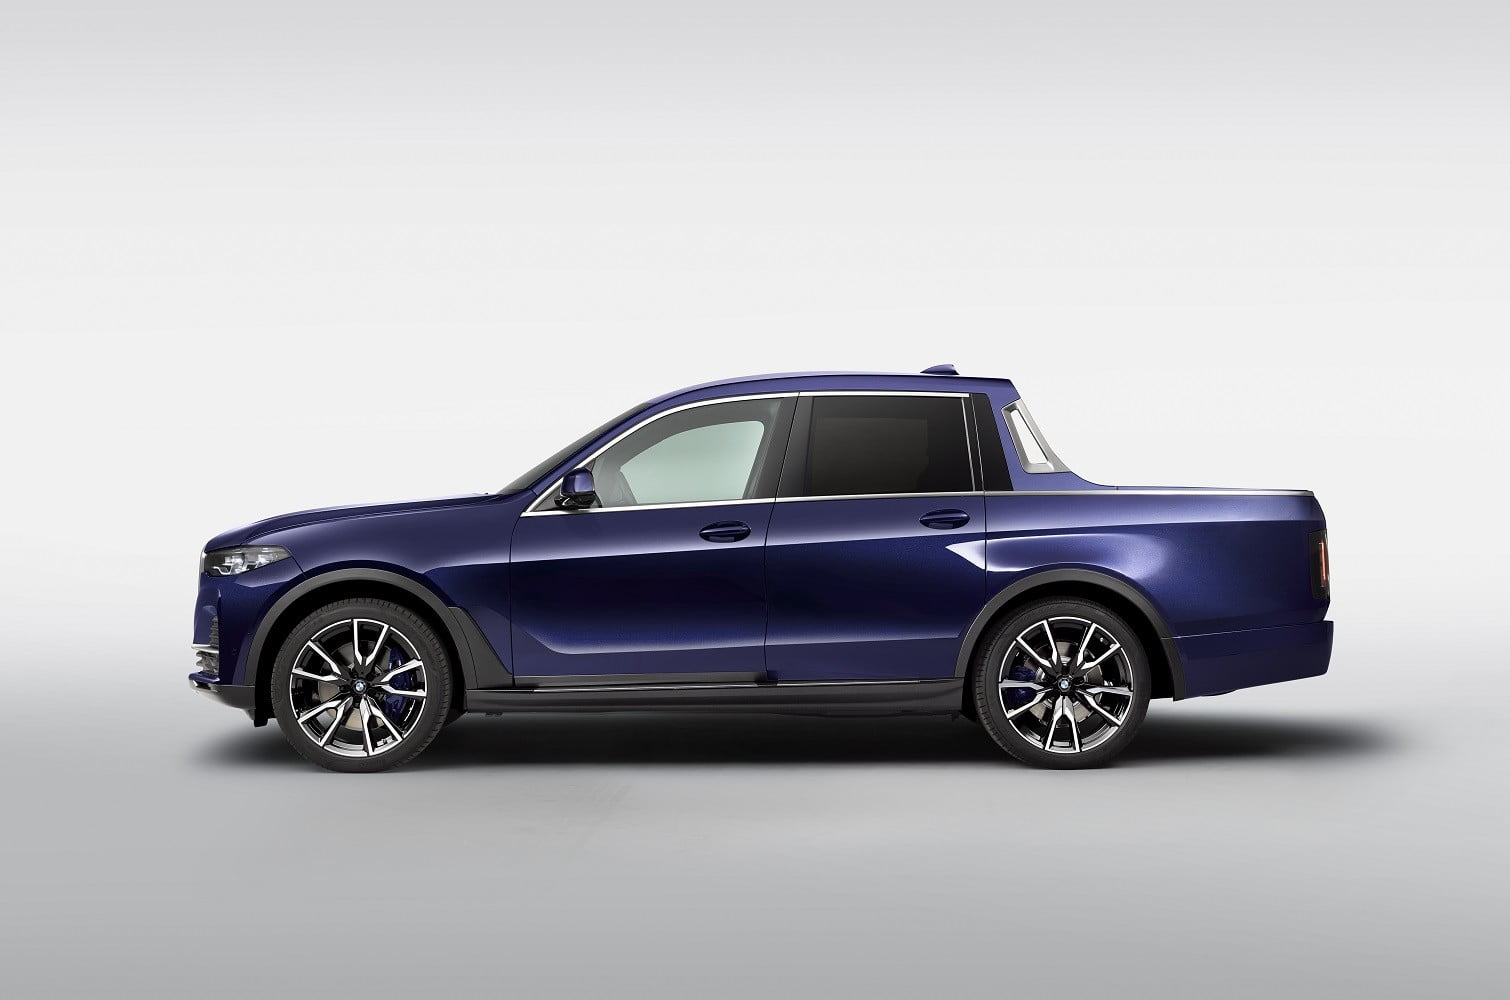 Your dreams (or nightmares) of a BMW-badged pickup truck just came true